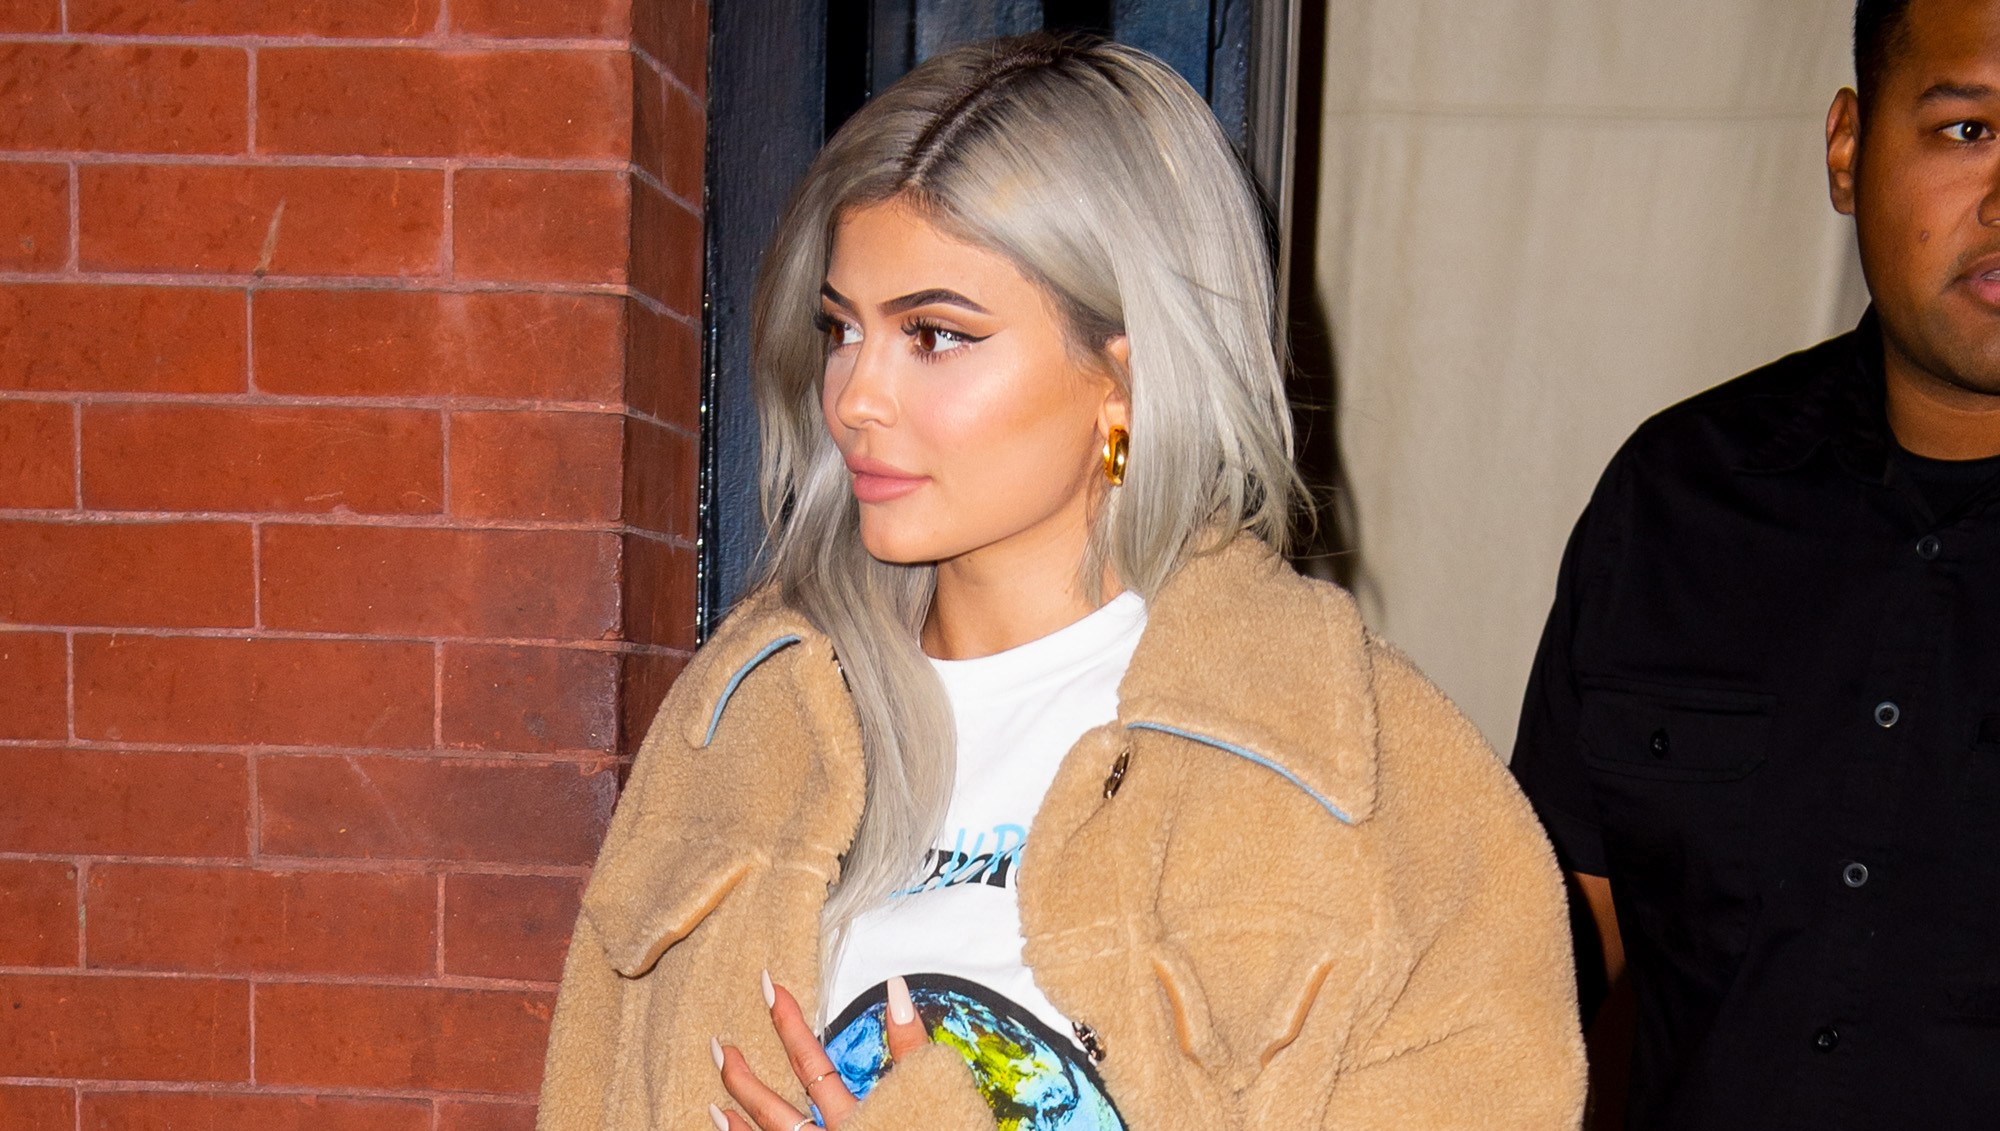 Kylie Jenner Parties With Friends After Jordyn Woods Drama